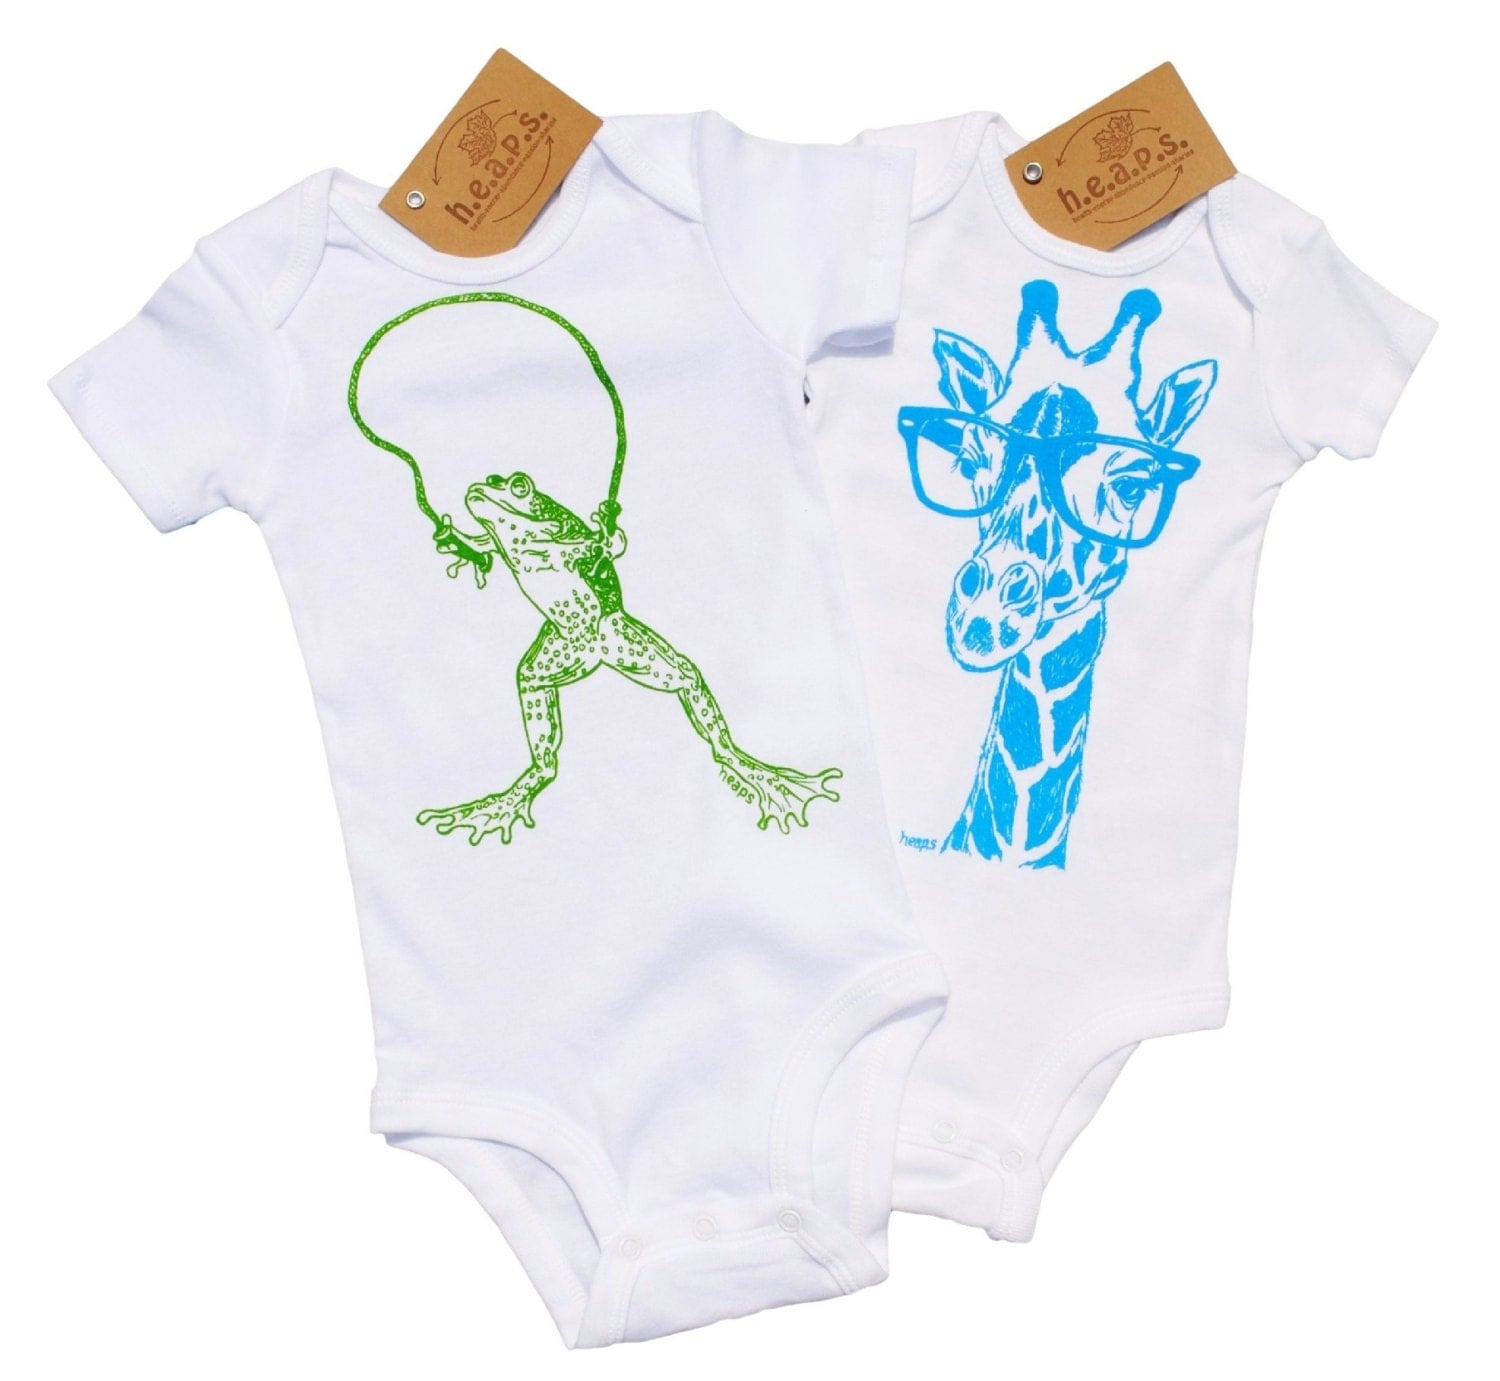 Trendy Baby Boy Clothes Hipster Baby Clothes Baby